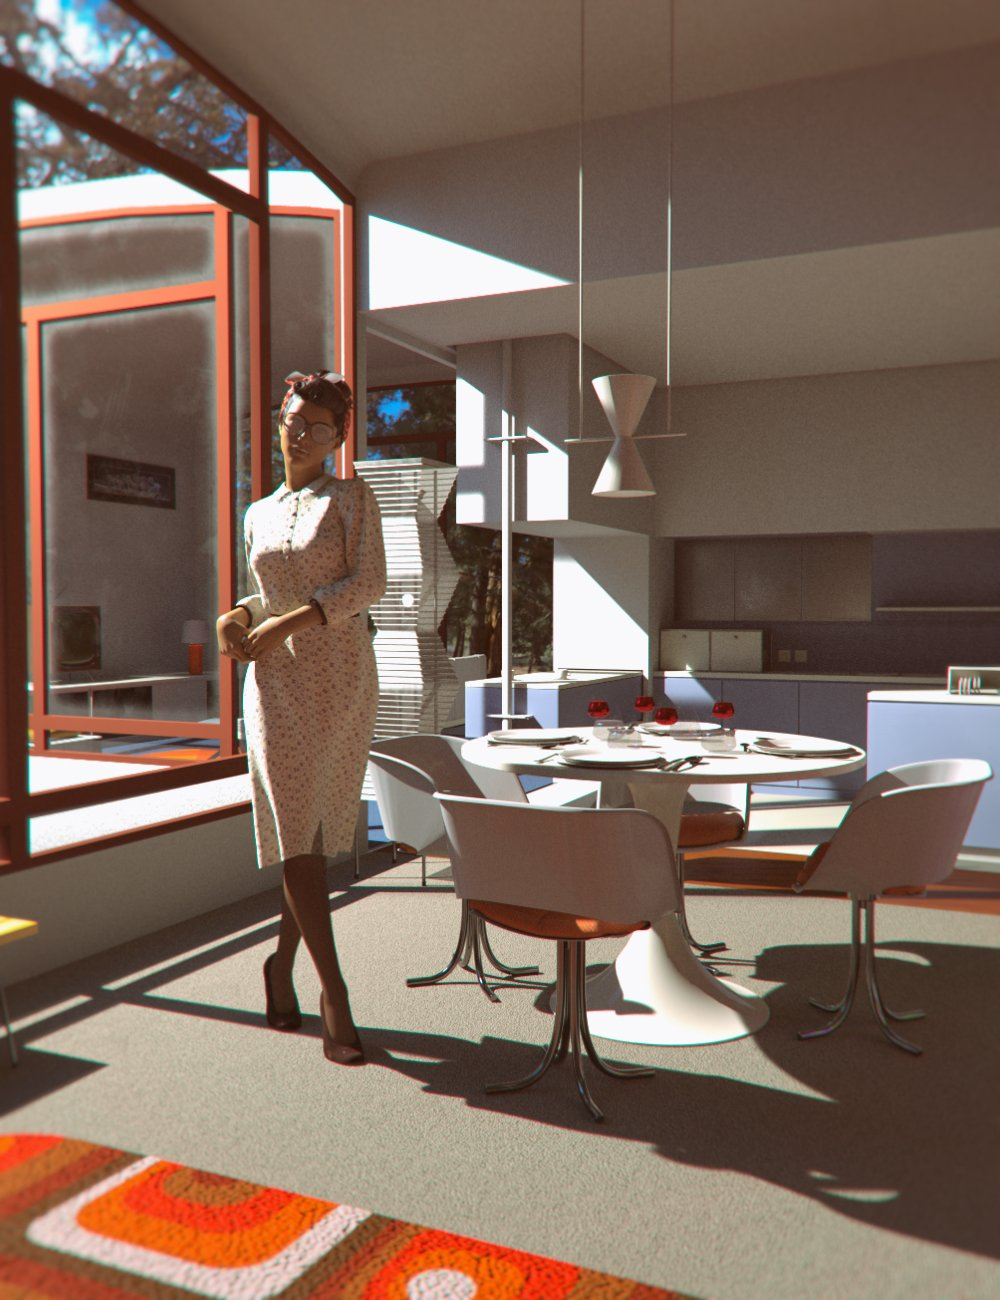 70s Modern House by: Mely3D, 3D Models by Daz 3D